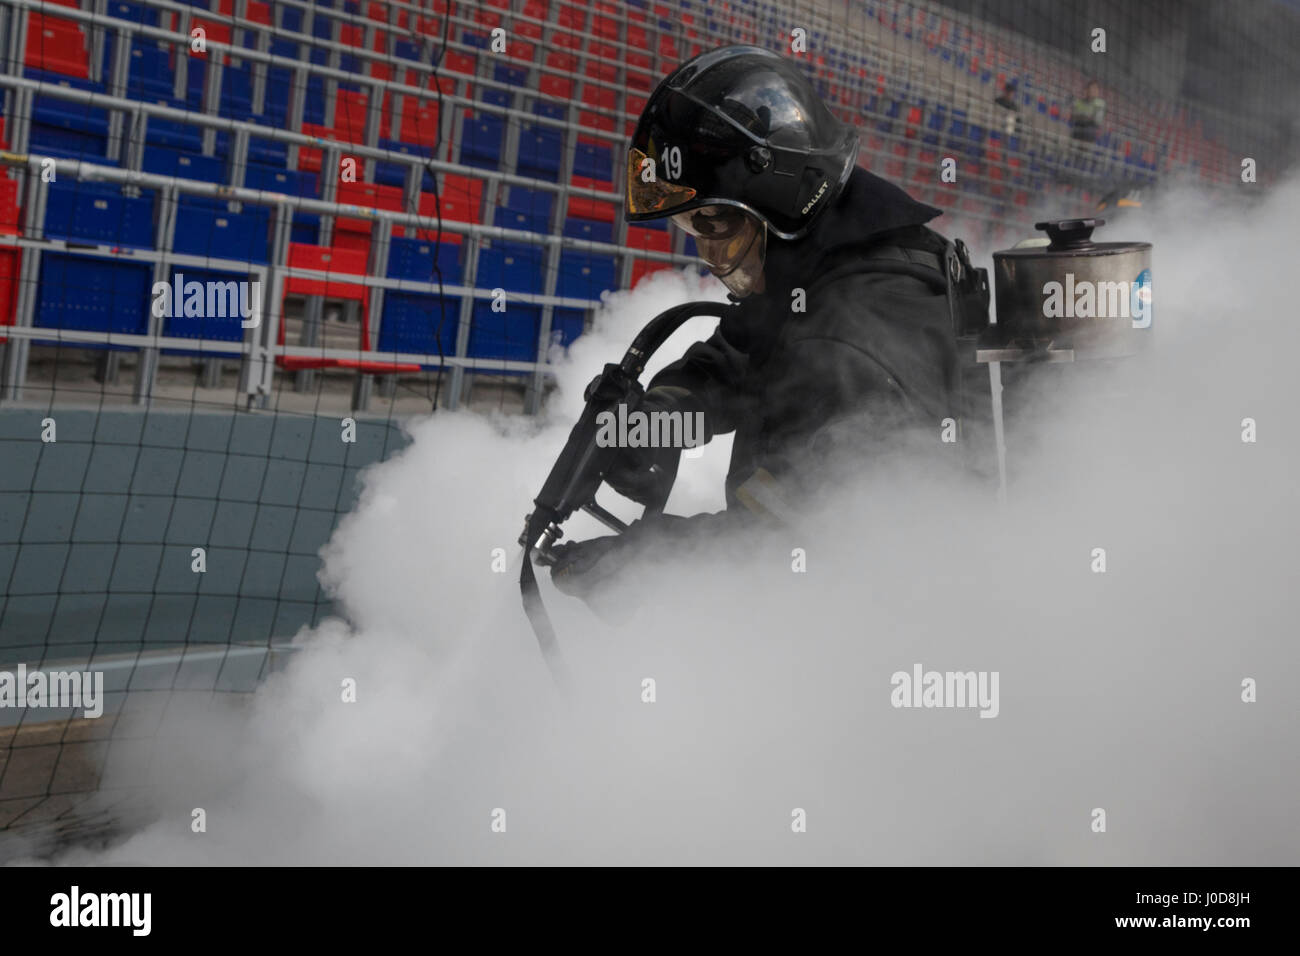 Moscow, Russia. 12th Apr, 2017. Emergencies Ministry's fire drill at CSKA Arena in Moscow Credit: Nikolay Vinokurov/Alamy Stock Photo